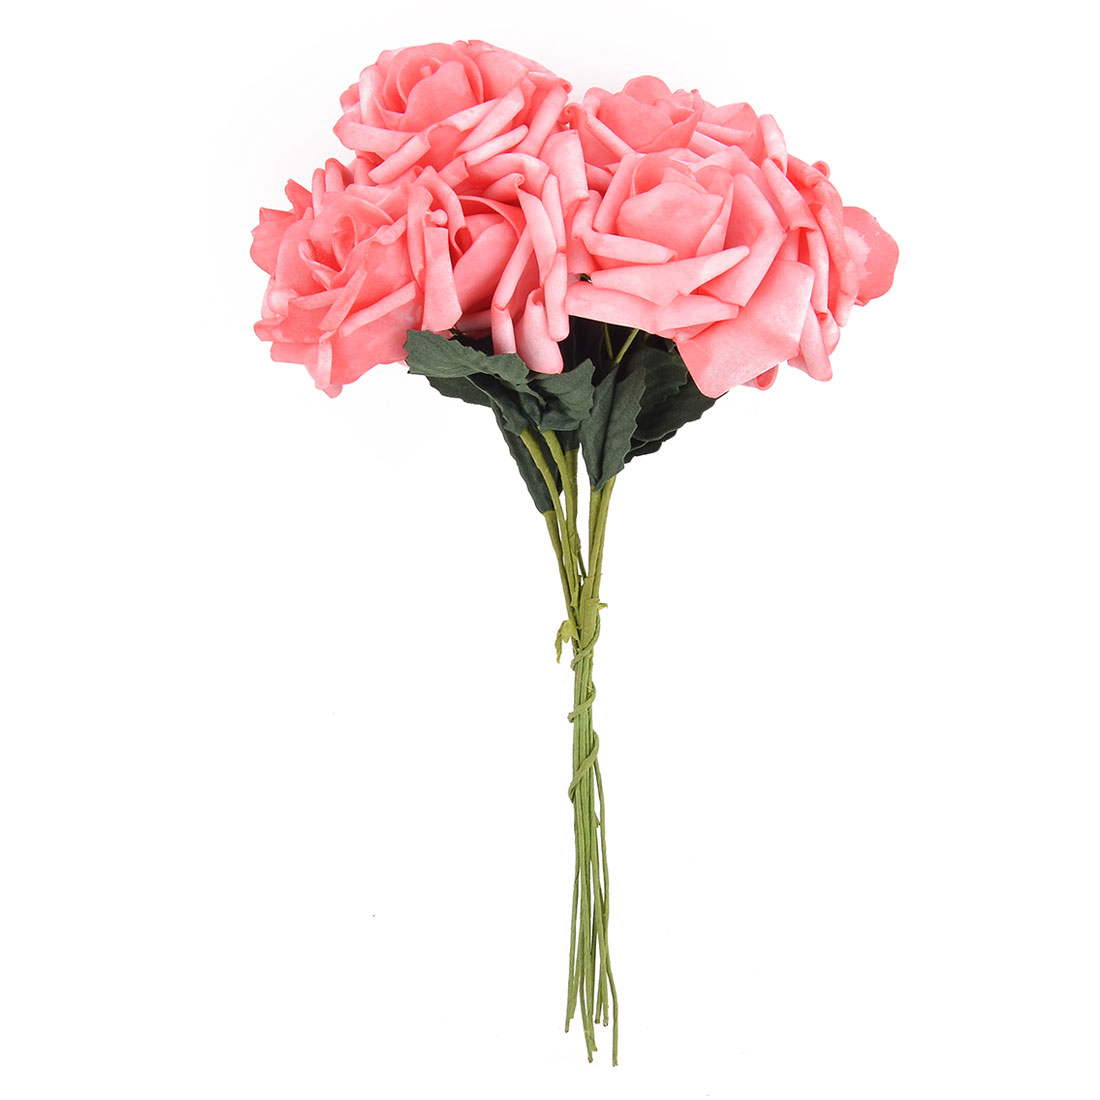 Bridal Wedding Foam Rose Buds Handhold Artificial Flower Blossom Pink 10pcs